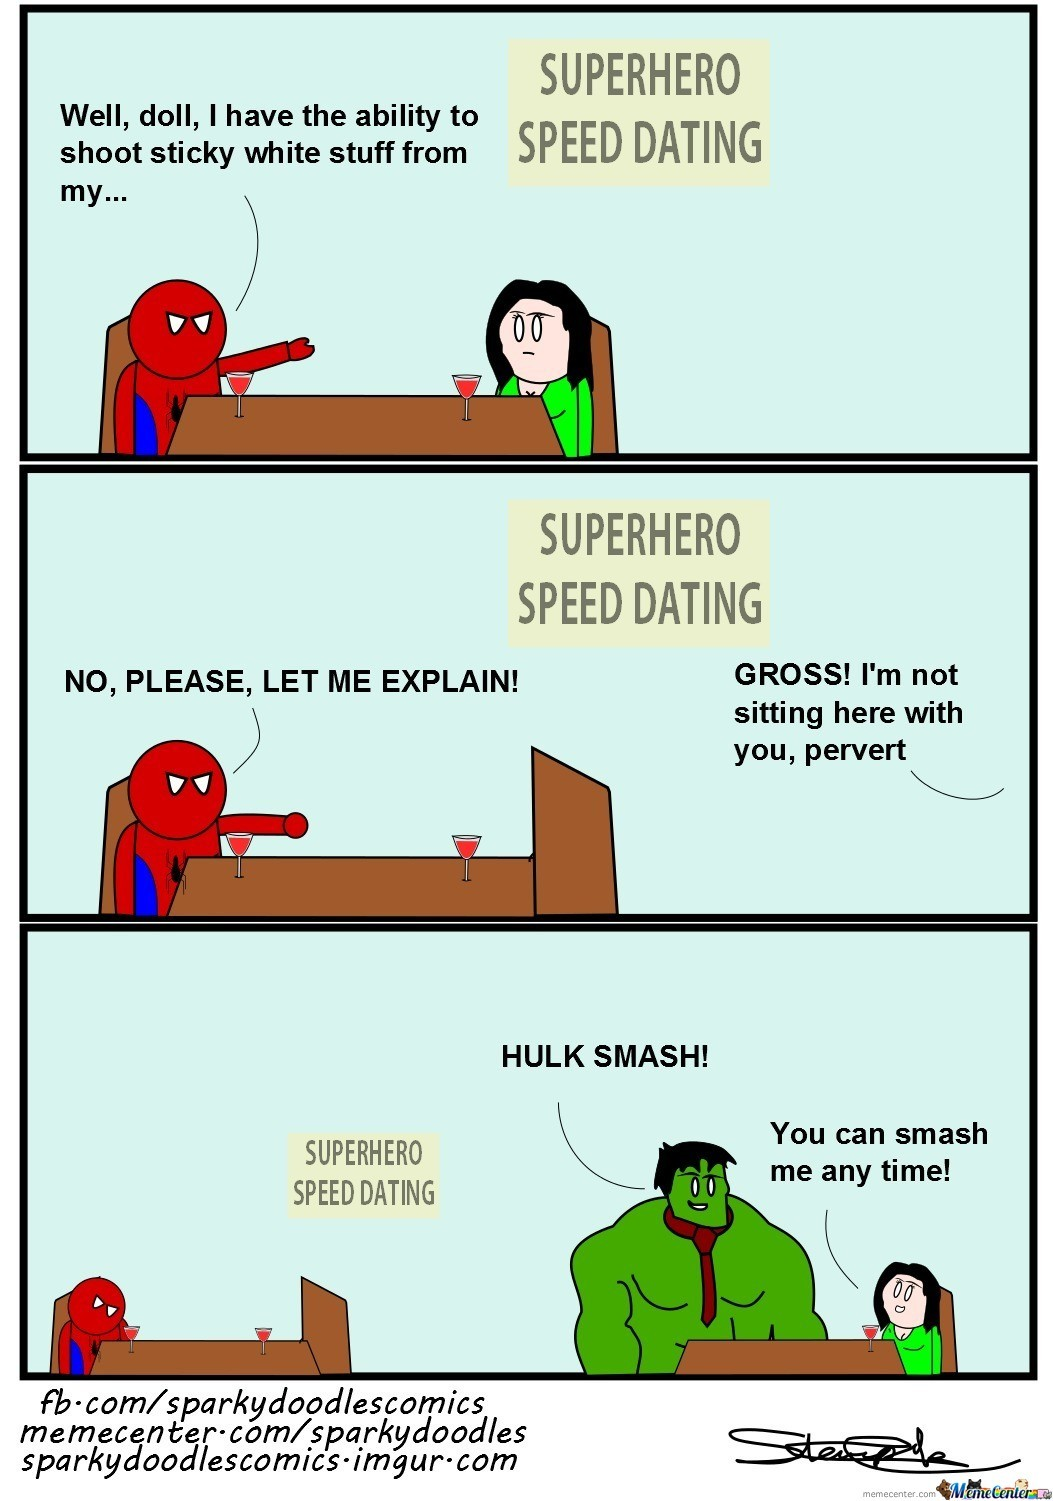 speed dating puns Read our expert reviews and user reviews of the most popular dating puns here, including features lists, star ratings, pricing information, videos, screenshots and more.